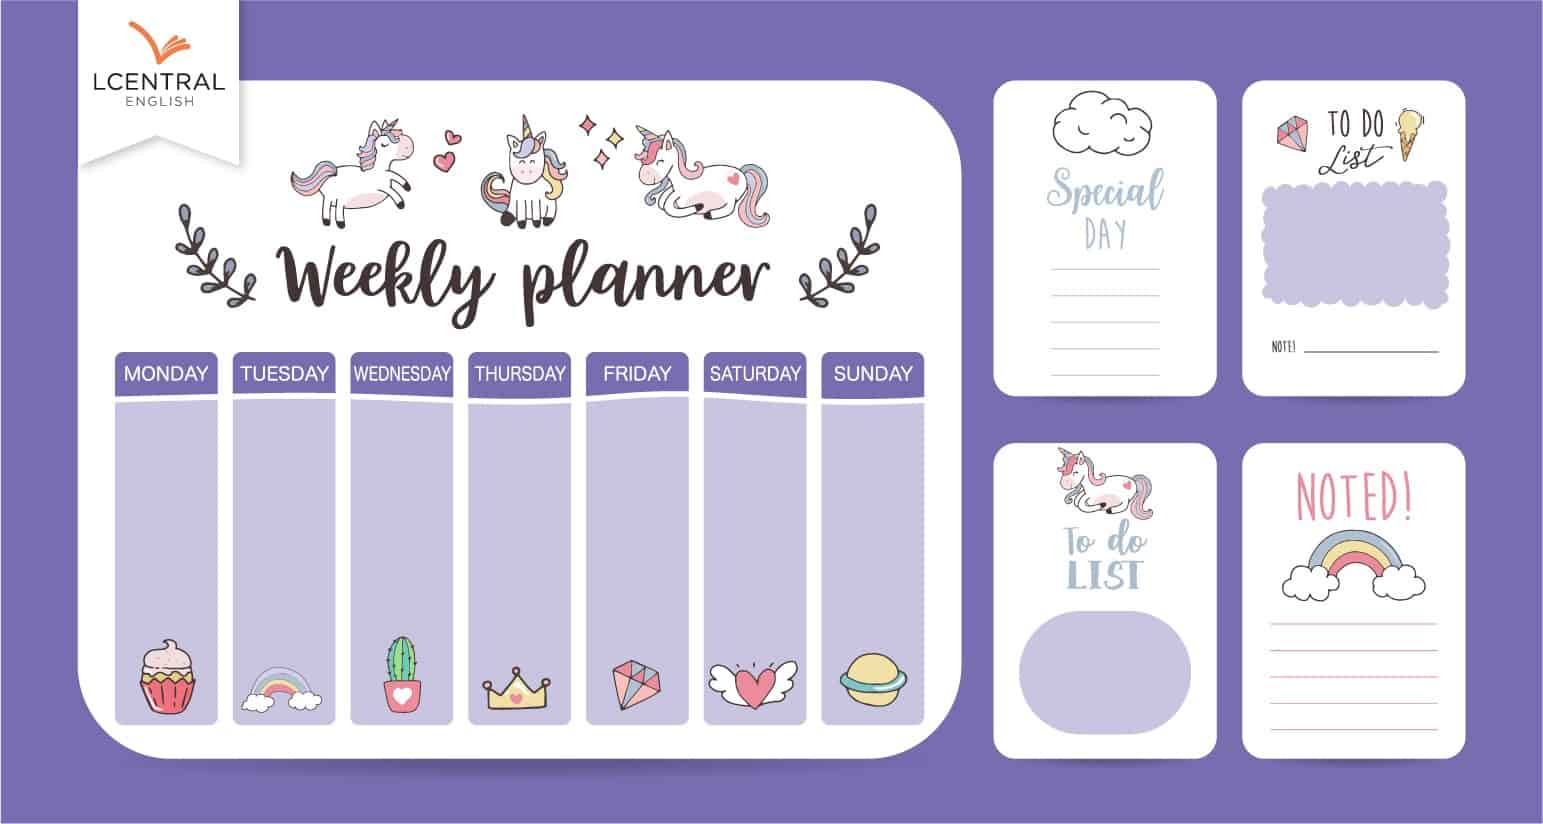 Drawing up timetable and other time management tools